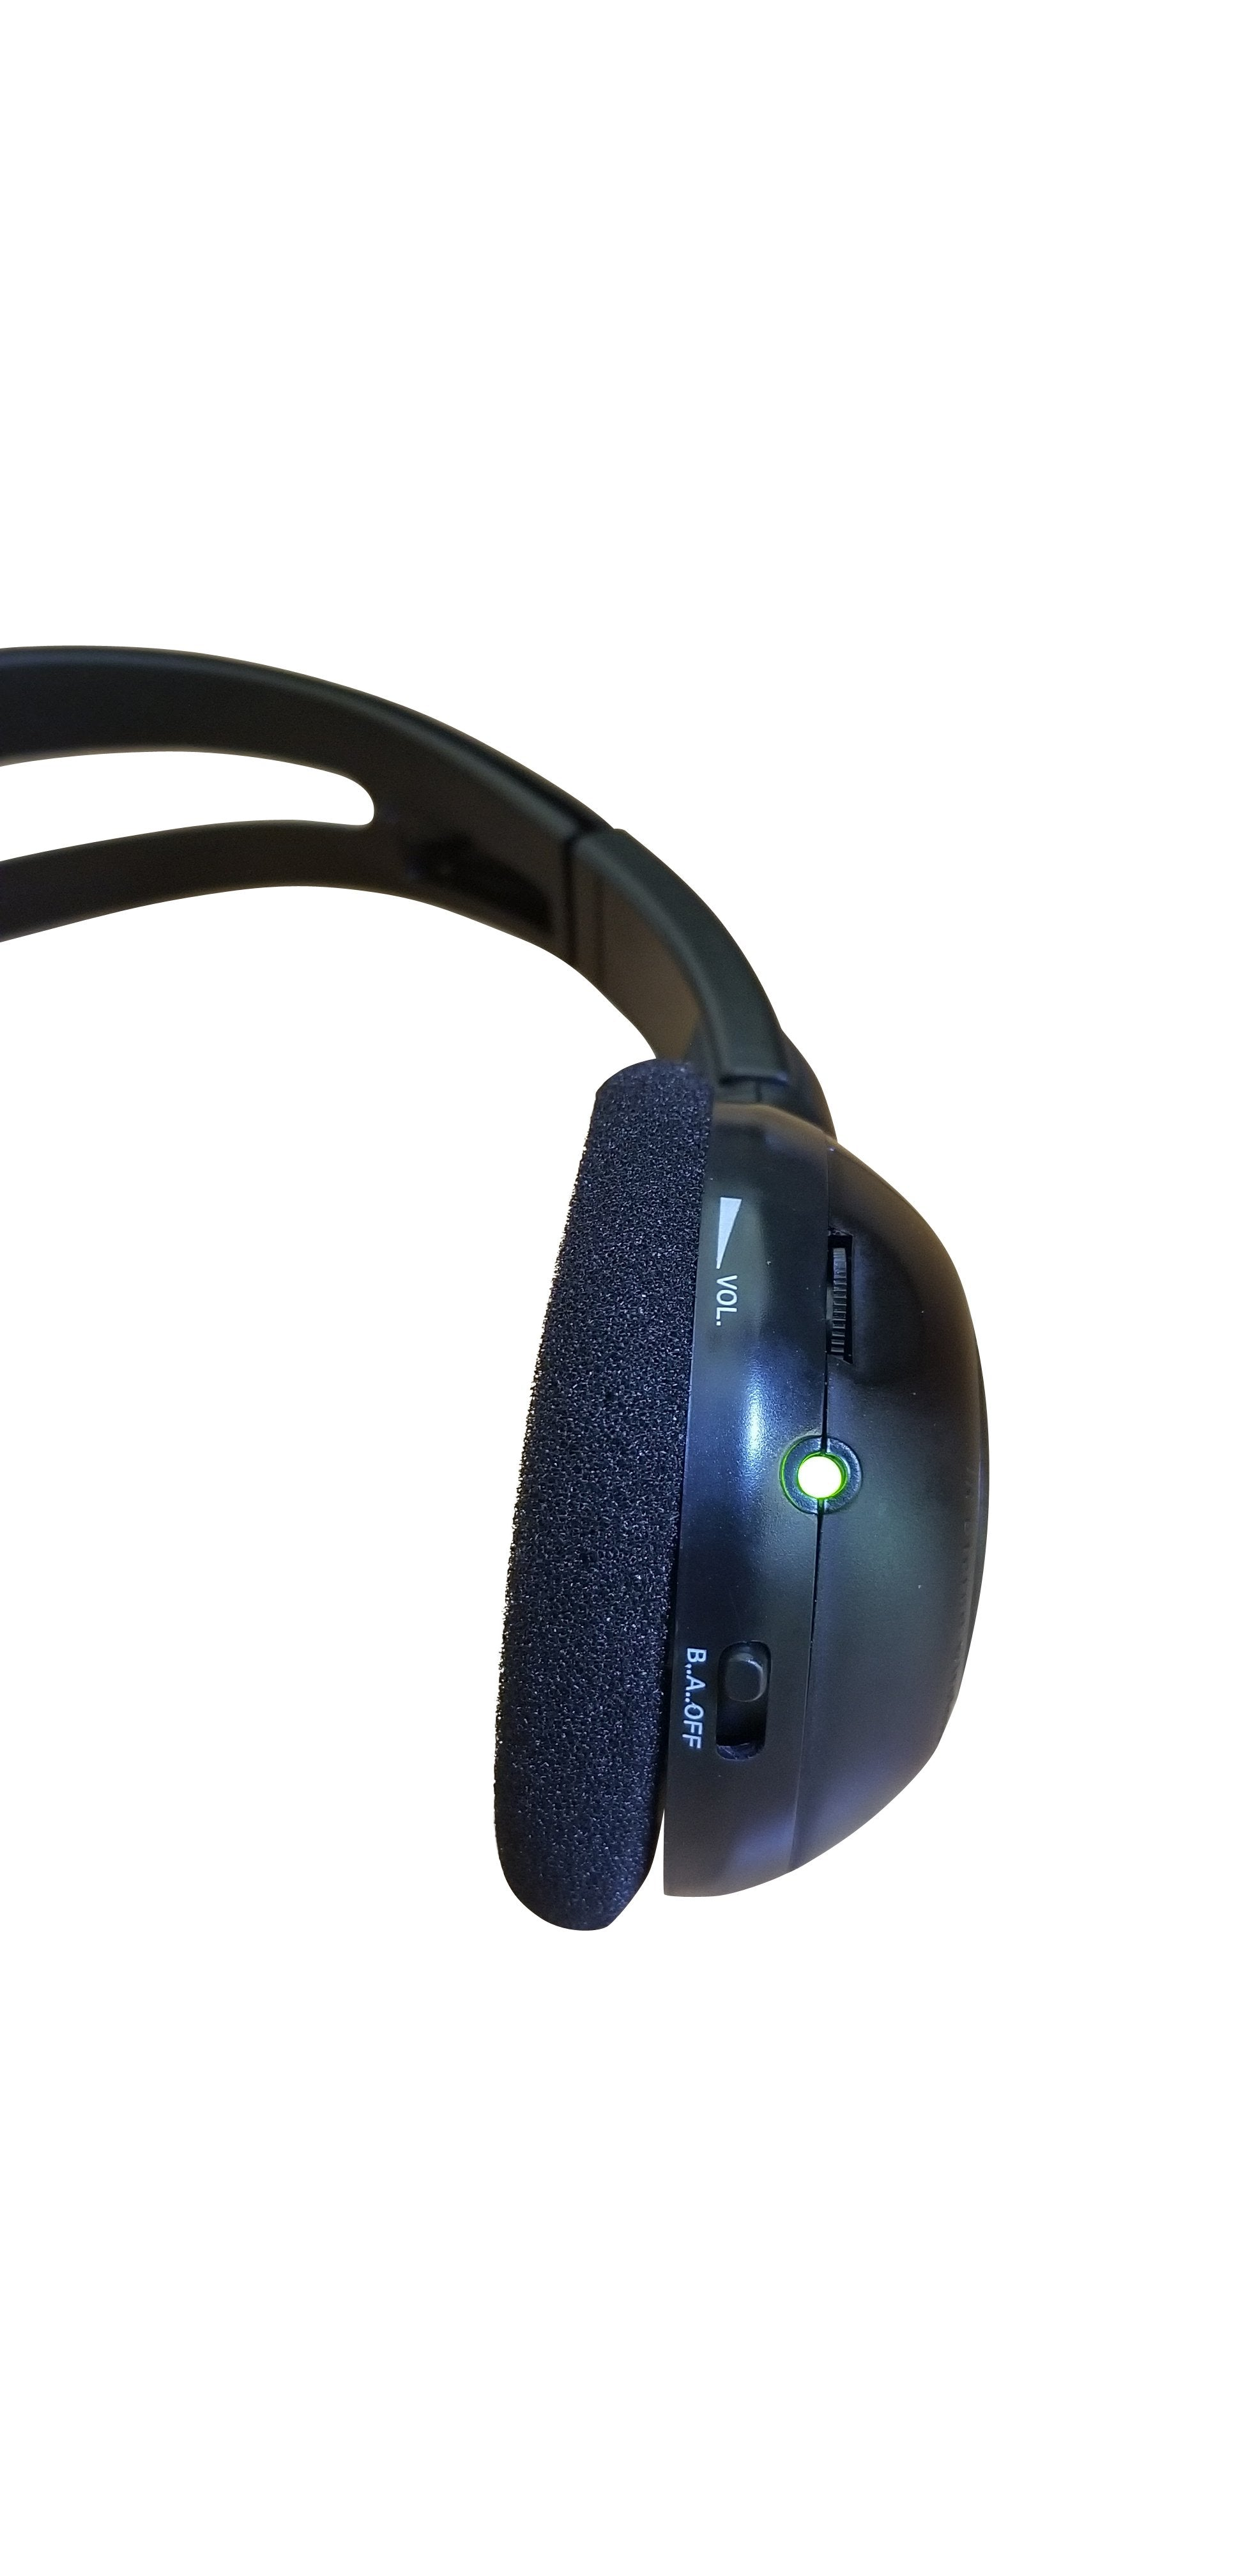 2009 Toyota FJ-Cruiser Wireless DVD Headphone